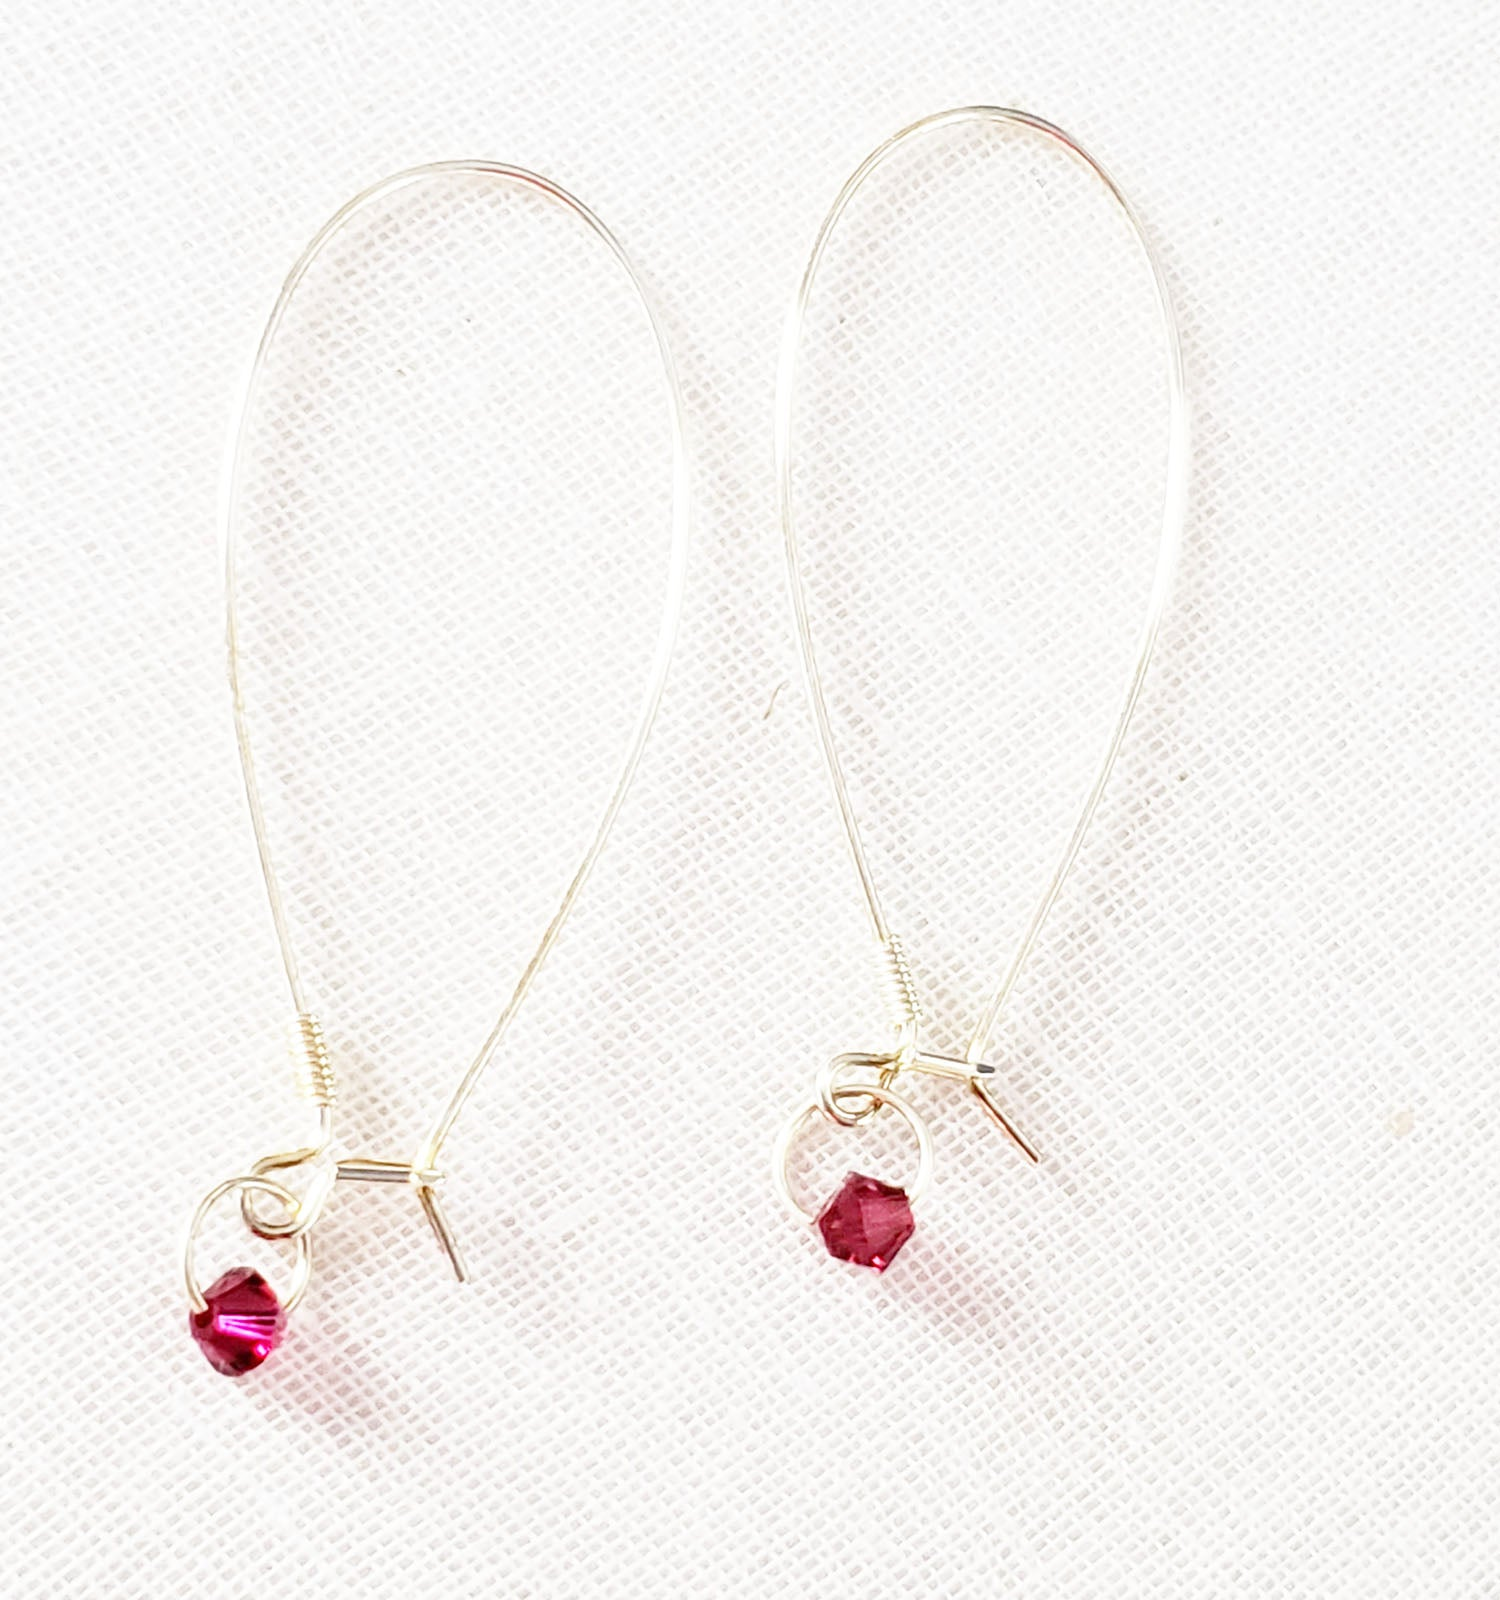 Swarovski Crystal Garnet Threader Hoops.